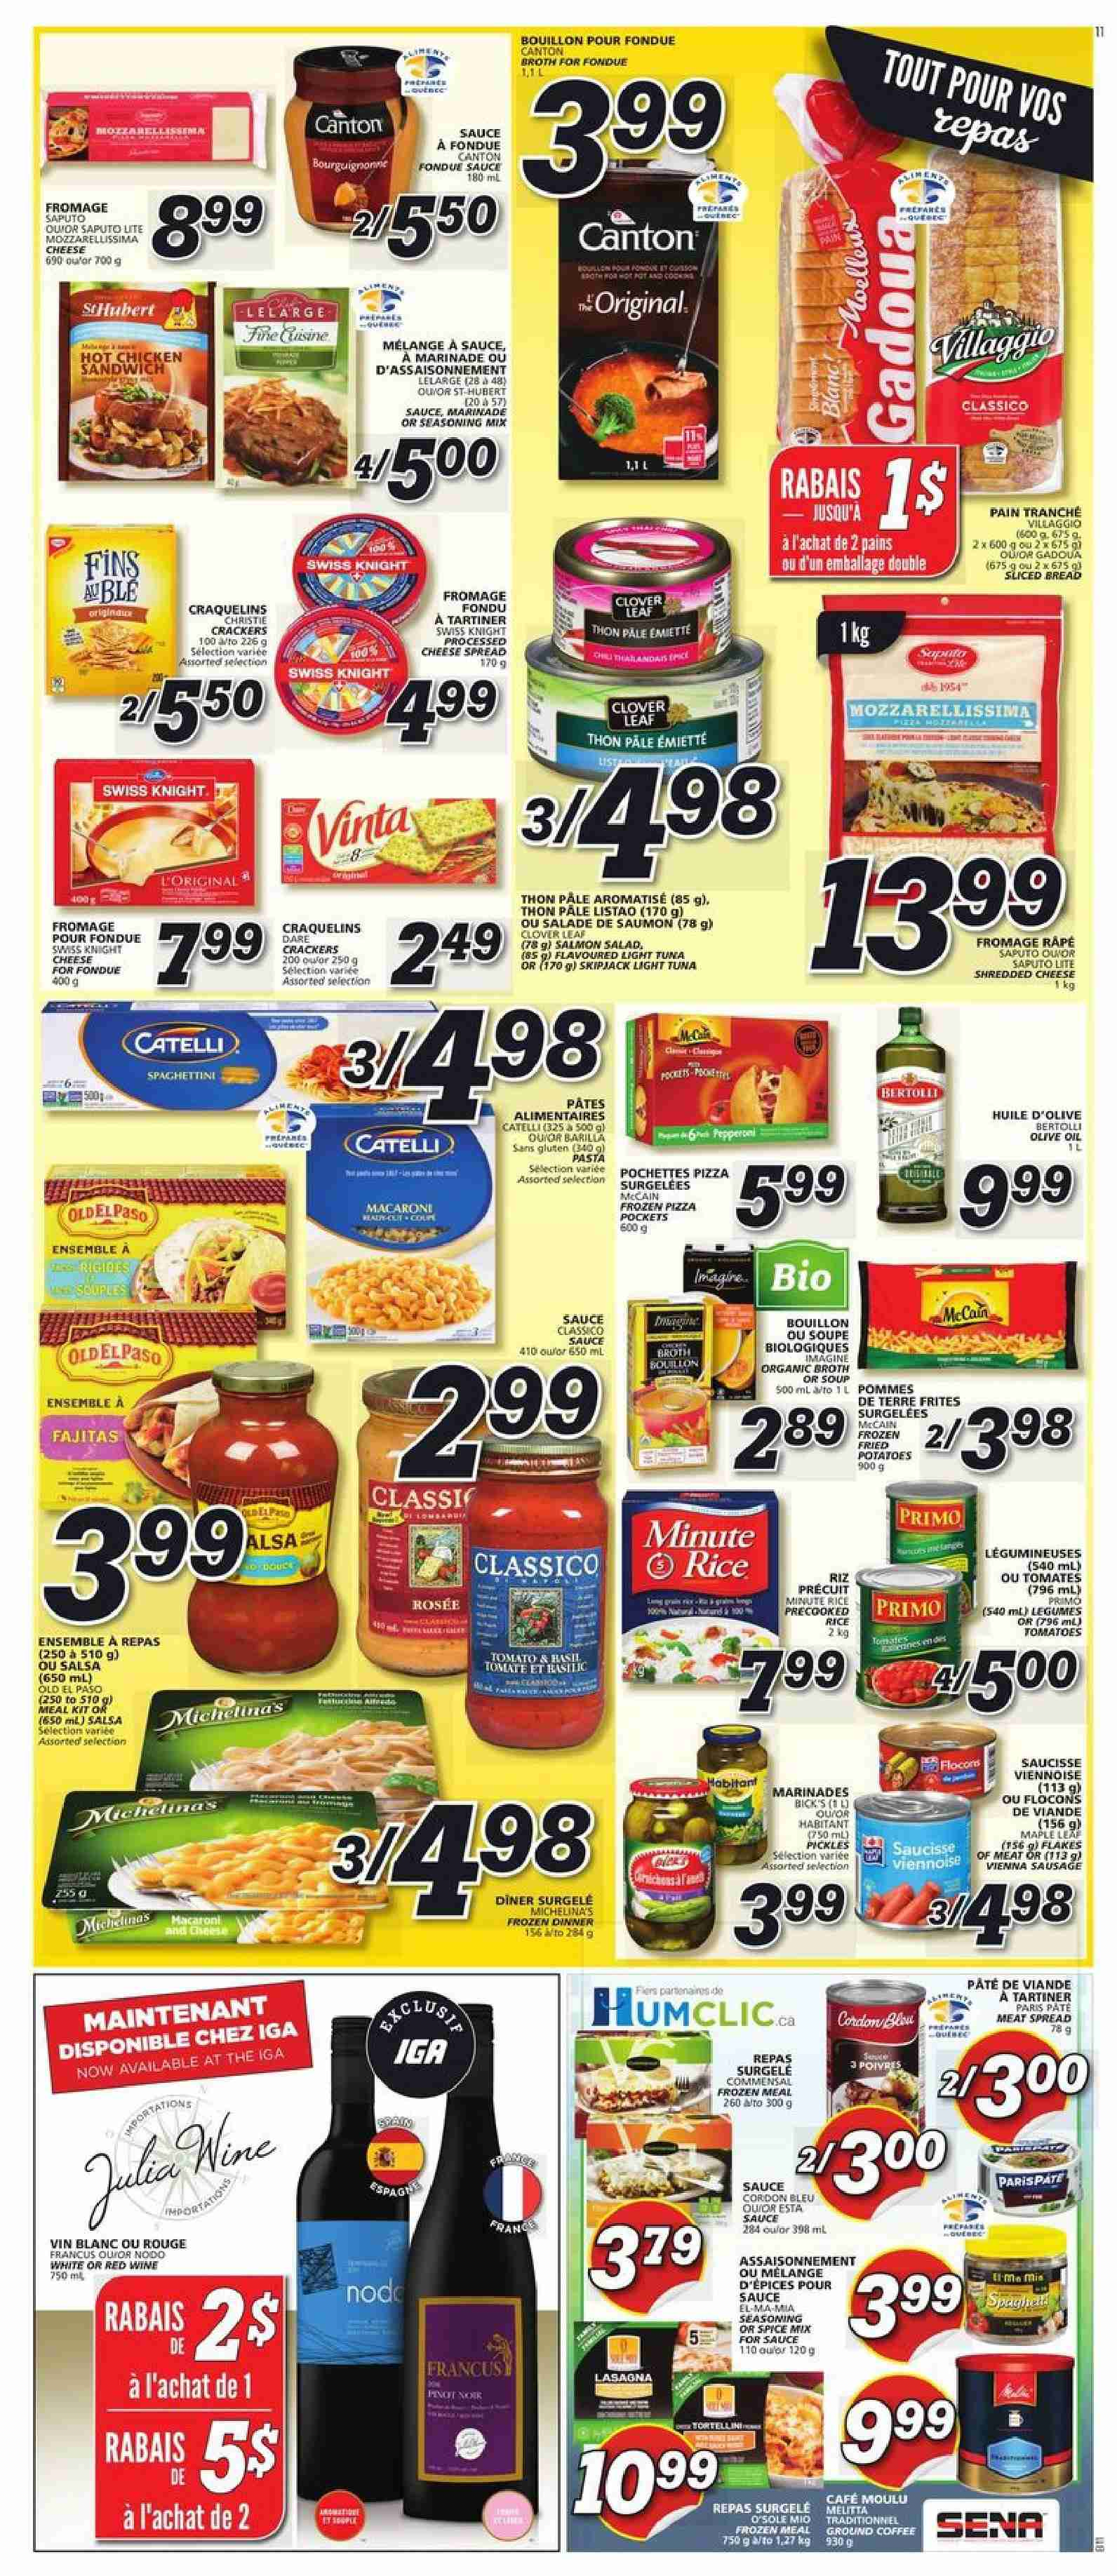 IGA Flyer  - September 27, 2018 - October 03, 2018. Page 9.